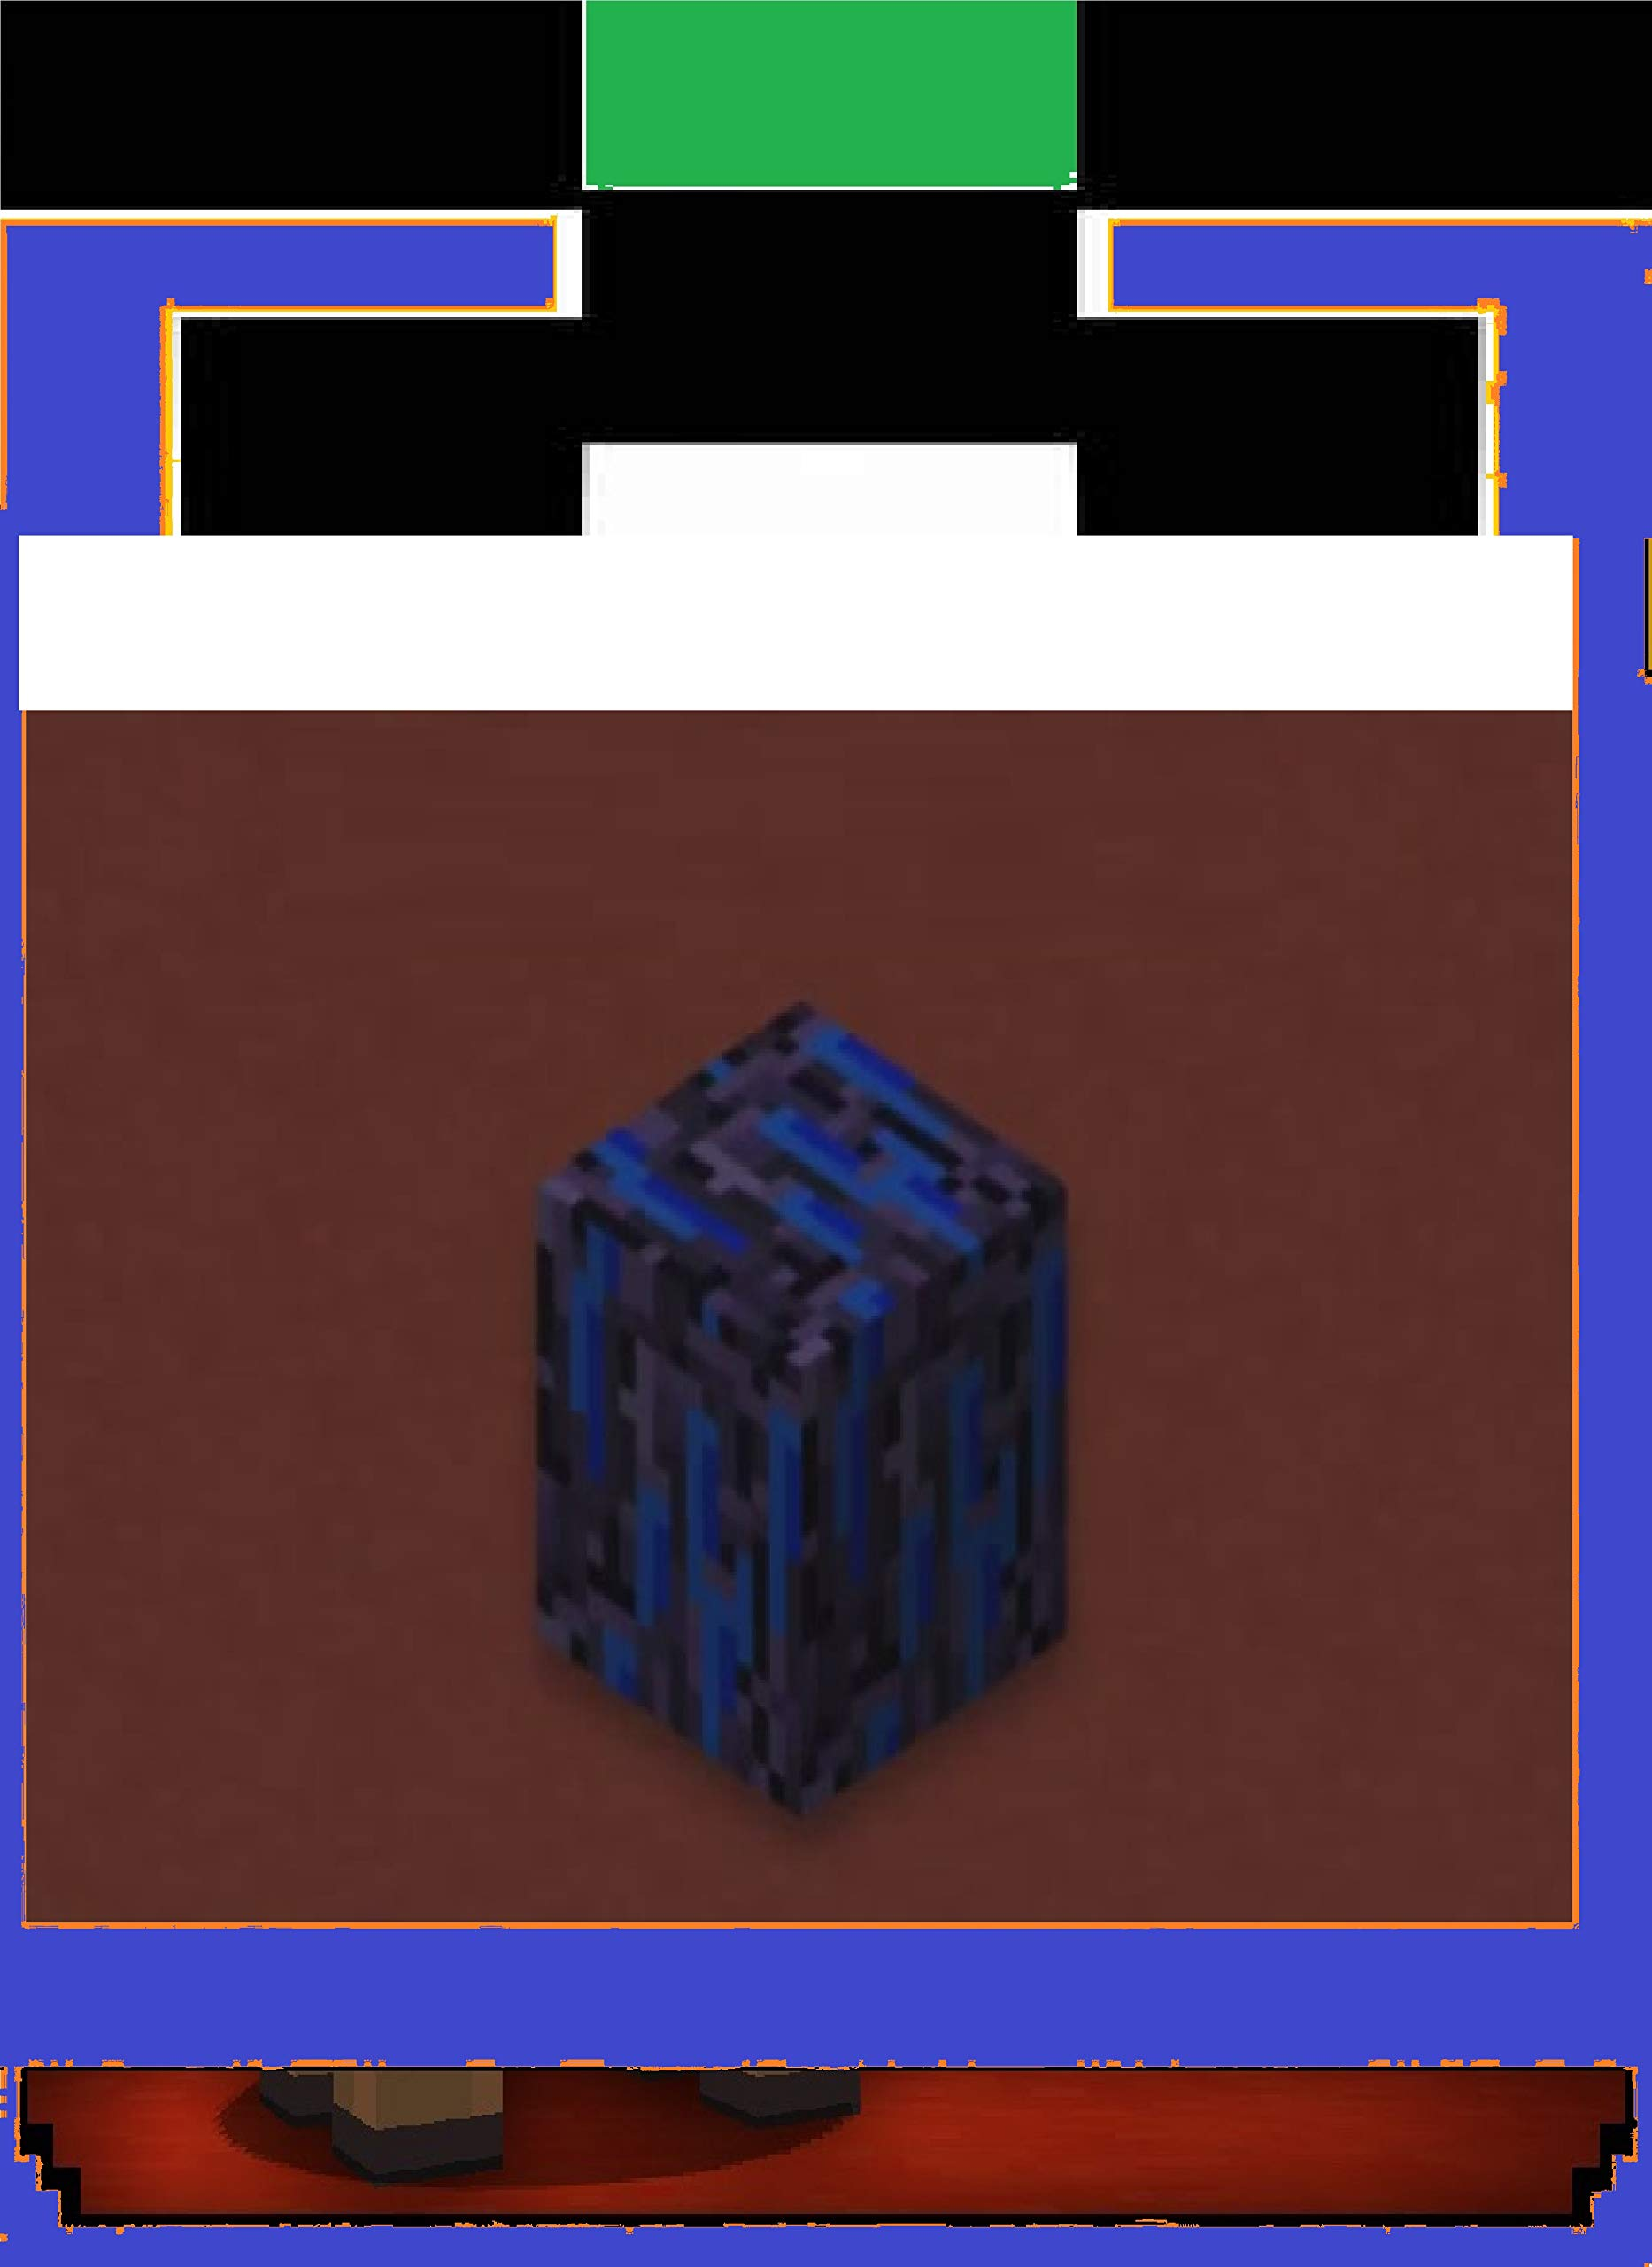 Minecraft- 10 Things You Didn't Know About the Bed - : (Minecrafters UNOFFICIAL Screen Guide Handbook) - Comic Book, graphic novels, Build Ideas, Starter Base,